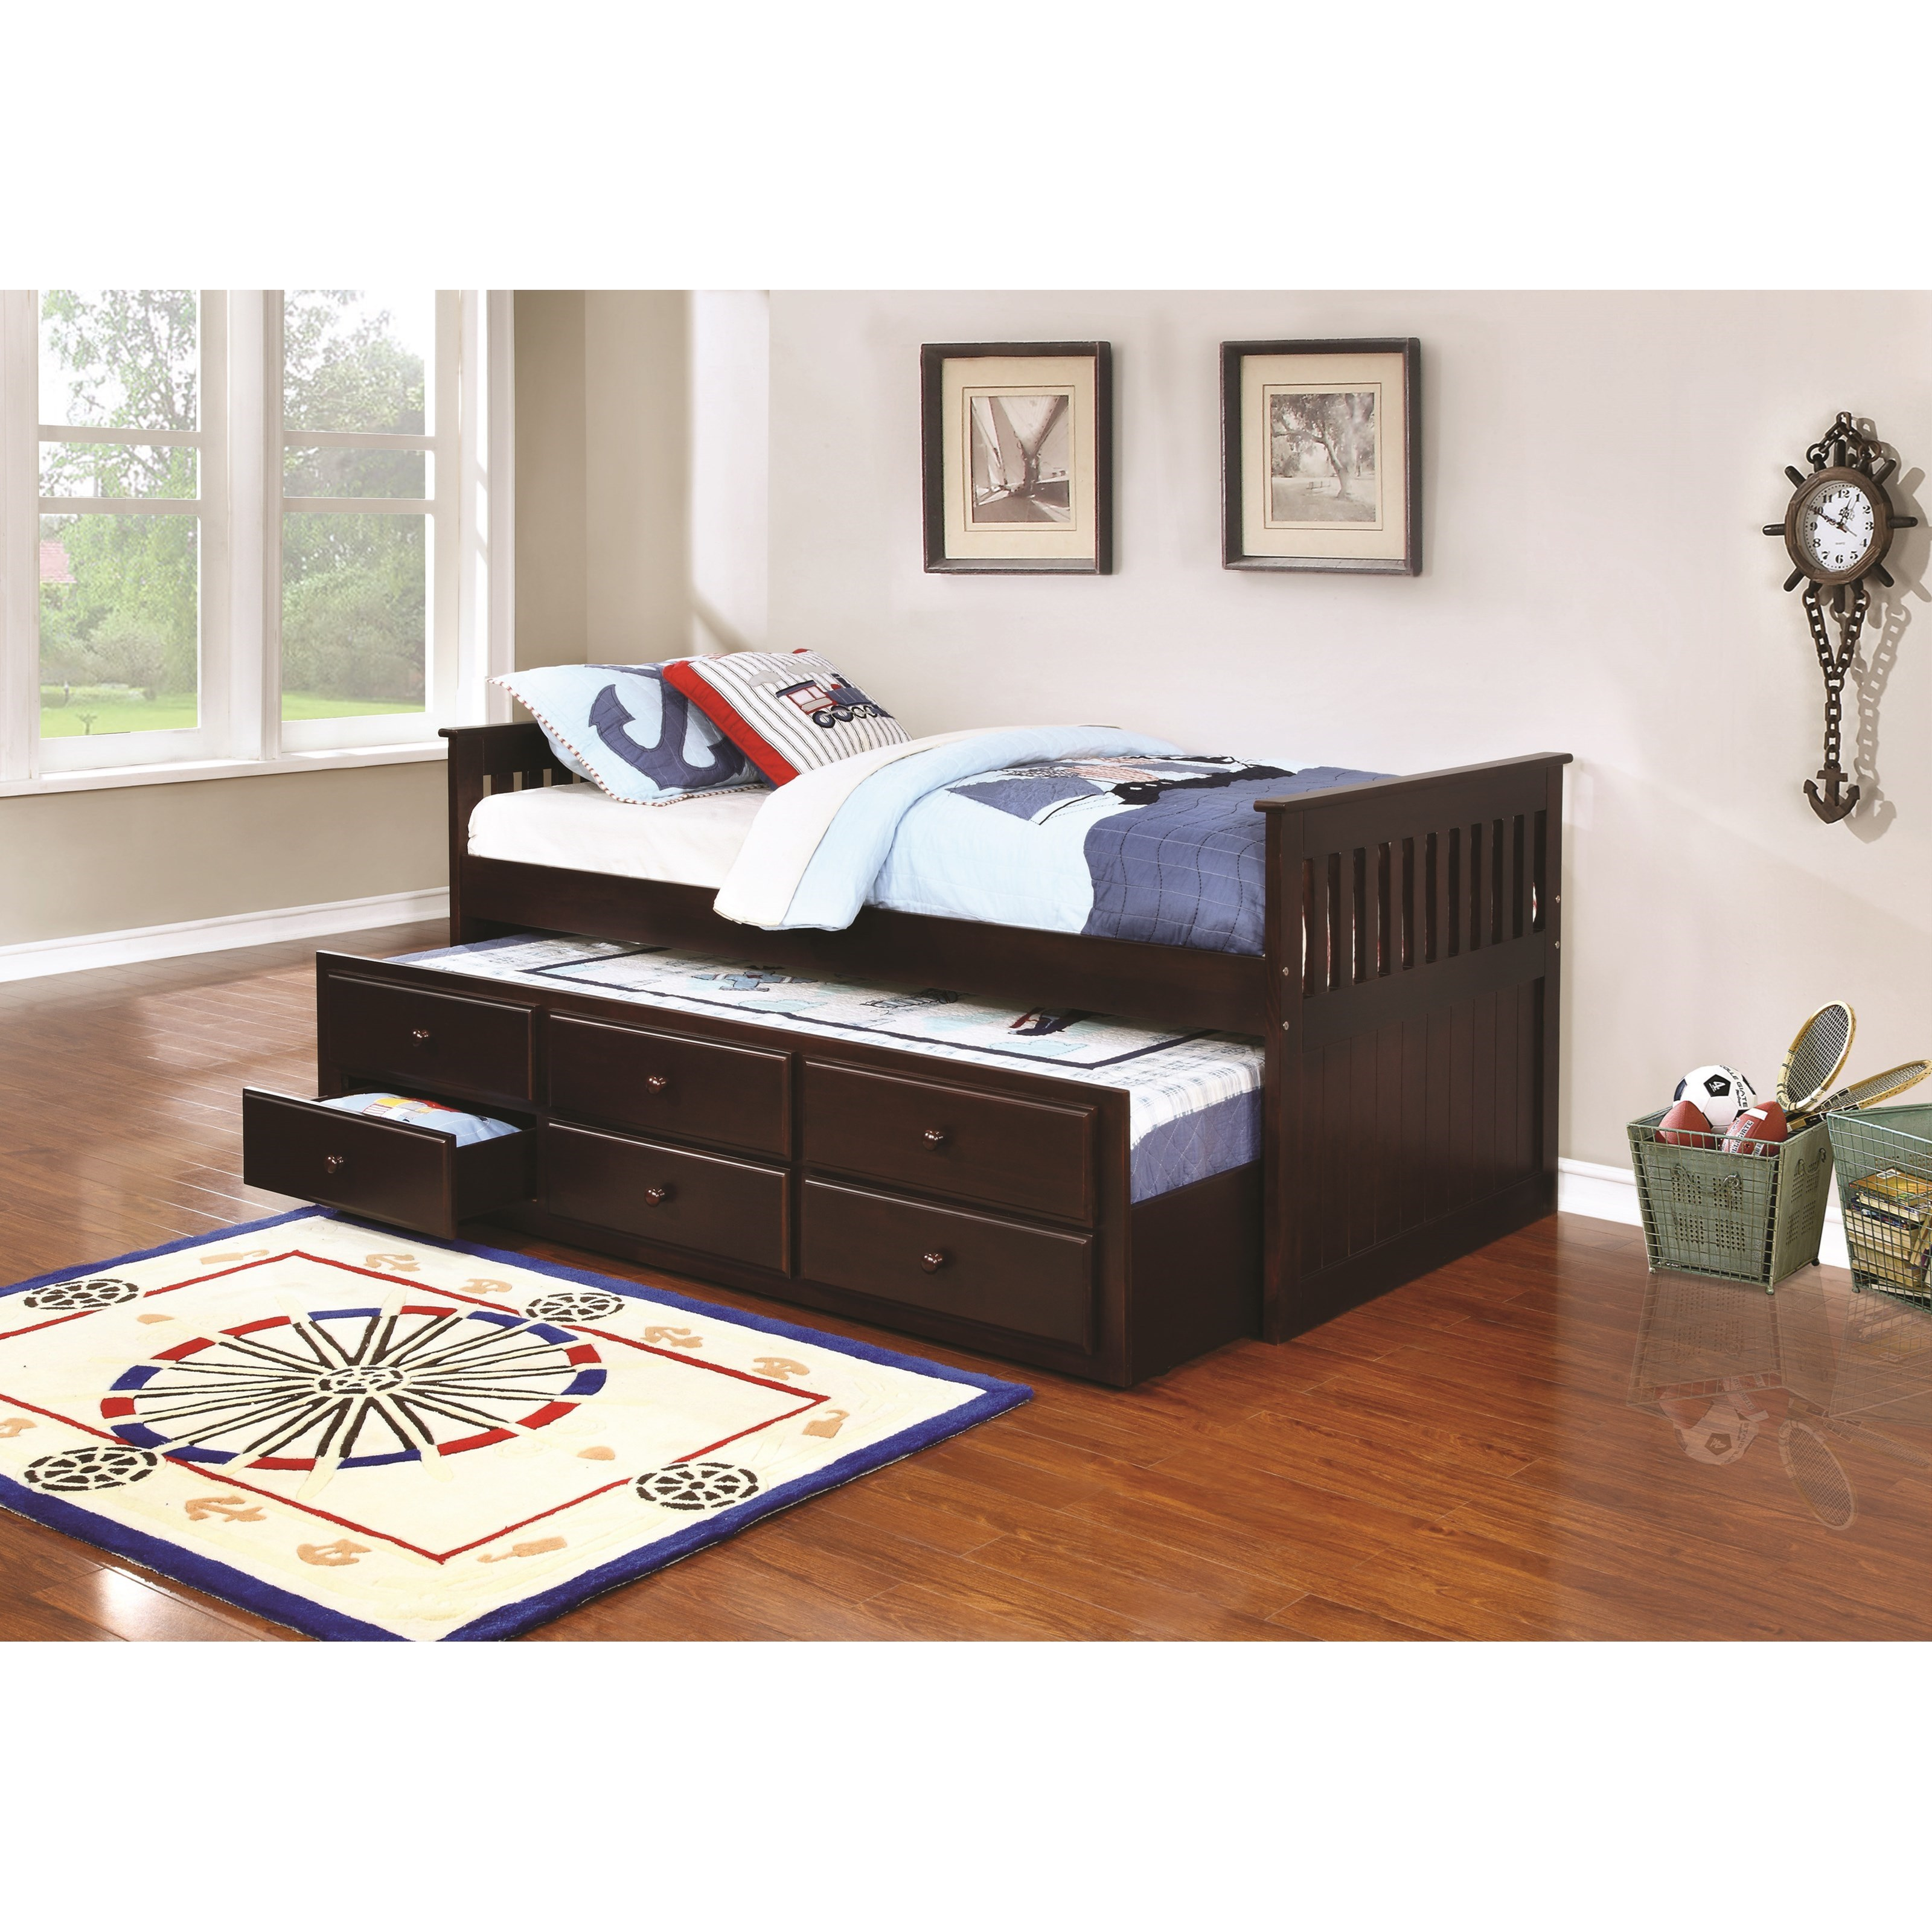 La Salle 300100 Daybed by Coaster at Nassau Furniture and Mattress